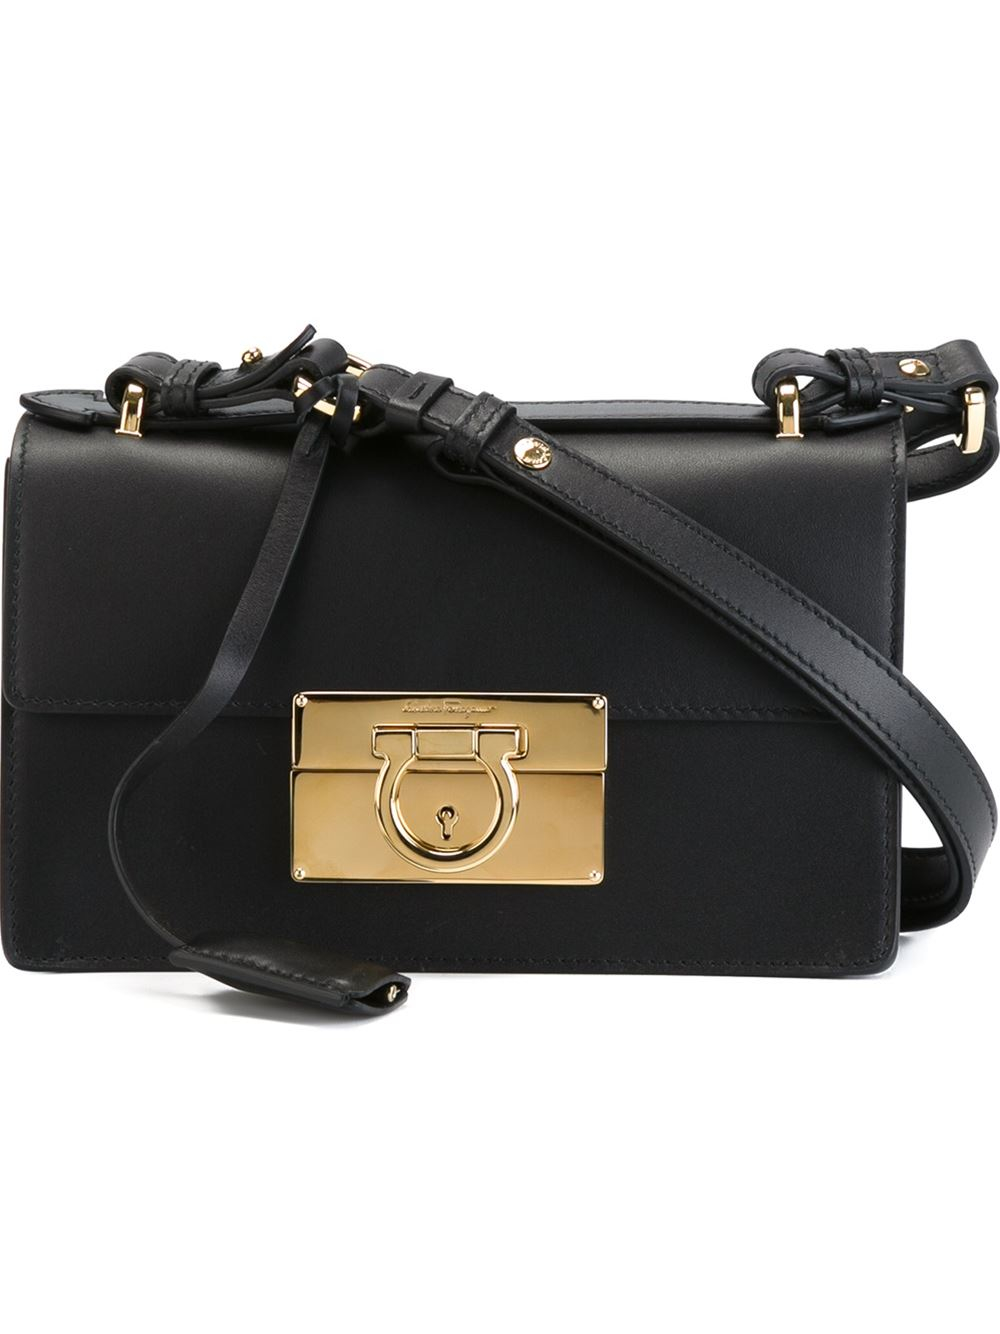 Ferragamo aileen shoulder bag in black lyst jpg 1000x1334 Salvatore  ferragamo black handbags 4d47d910abce5